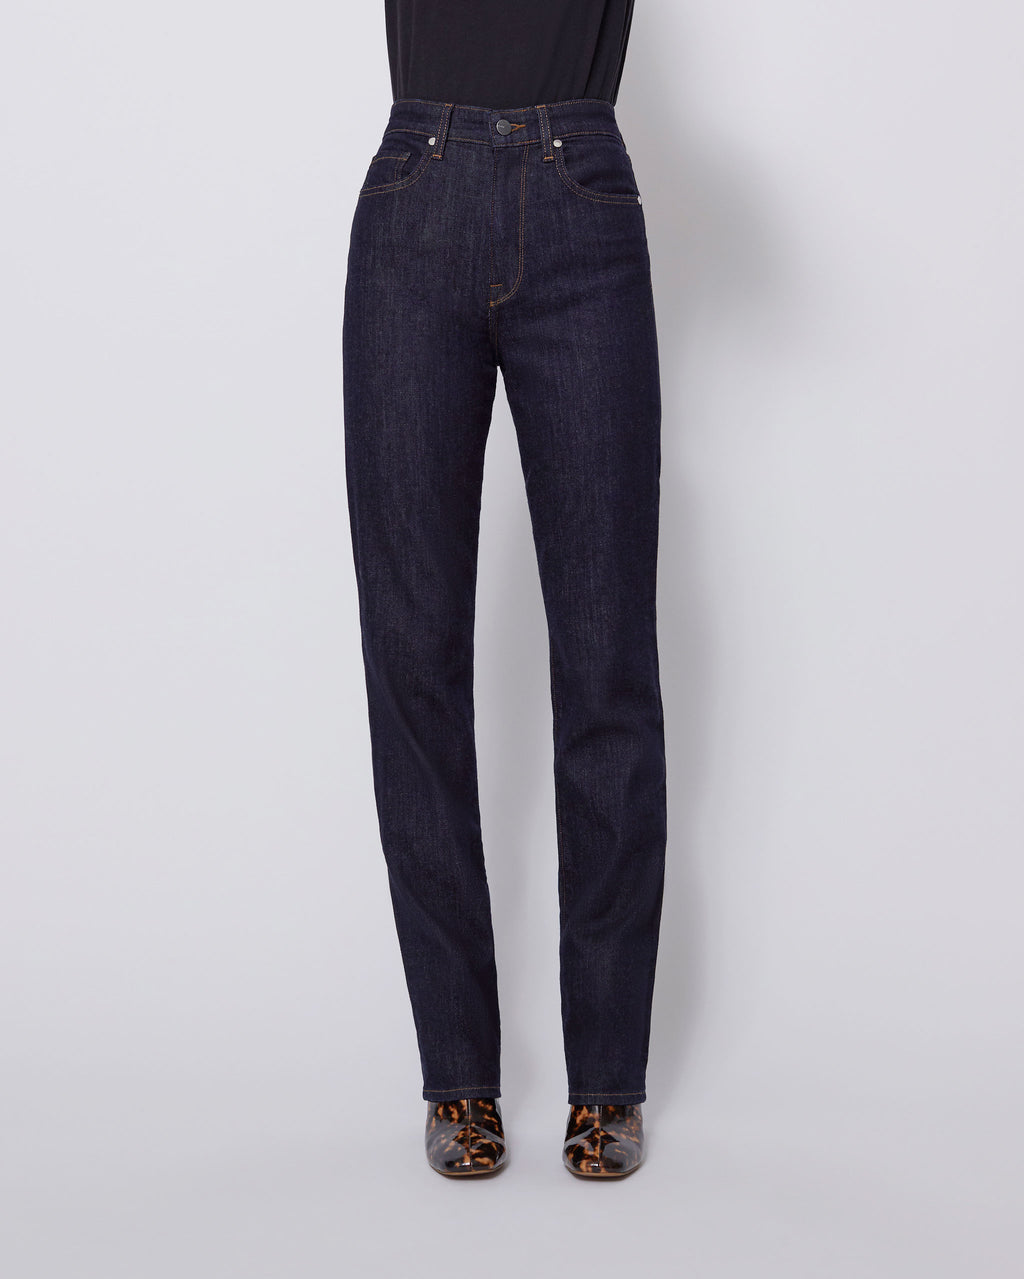 The High Rise Relaxed Jean in Abyss